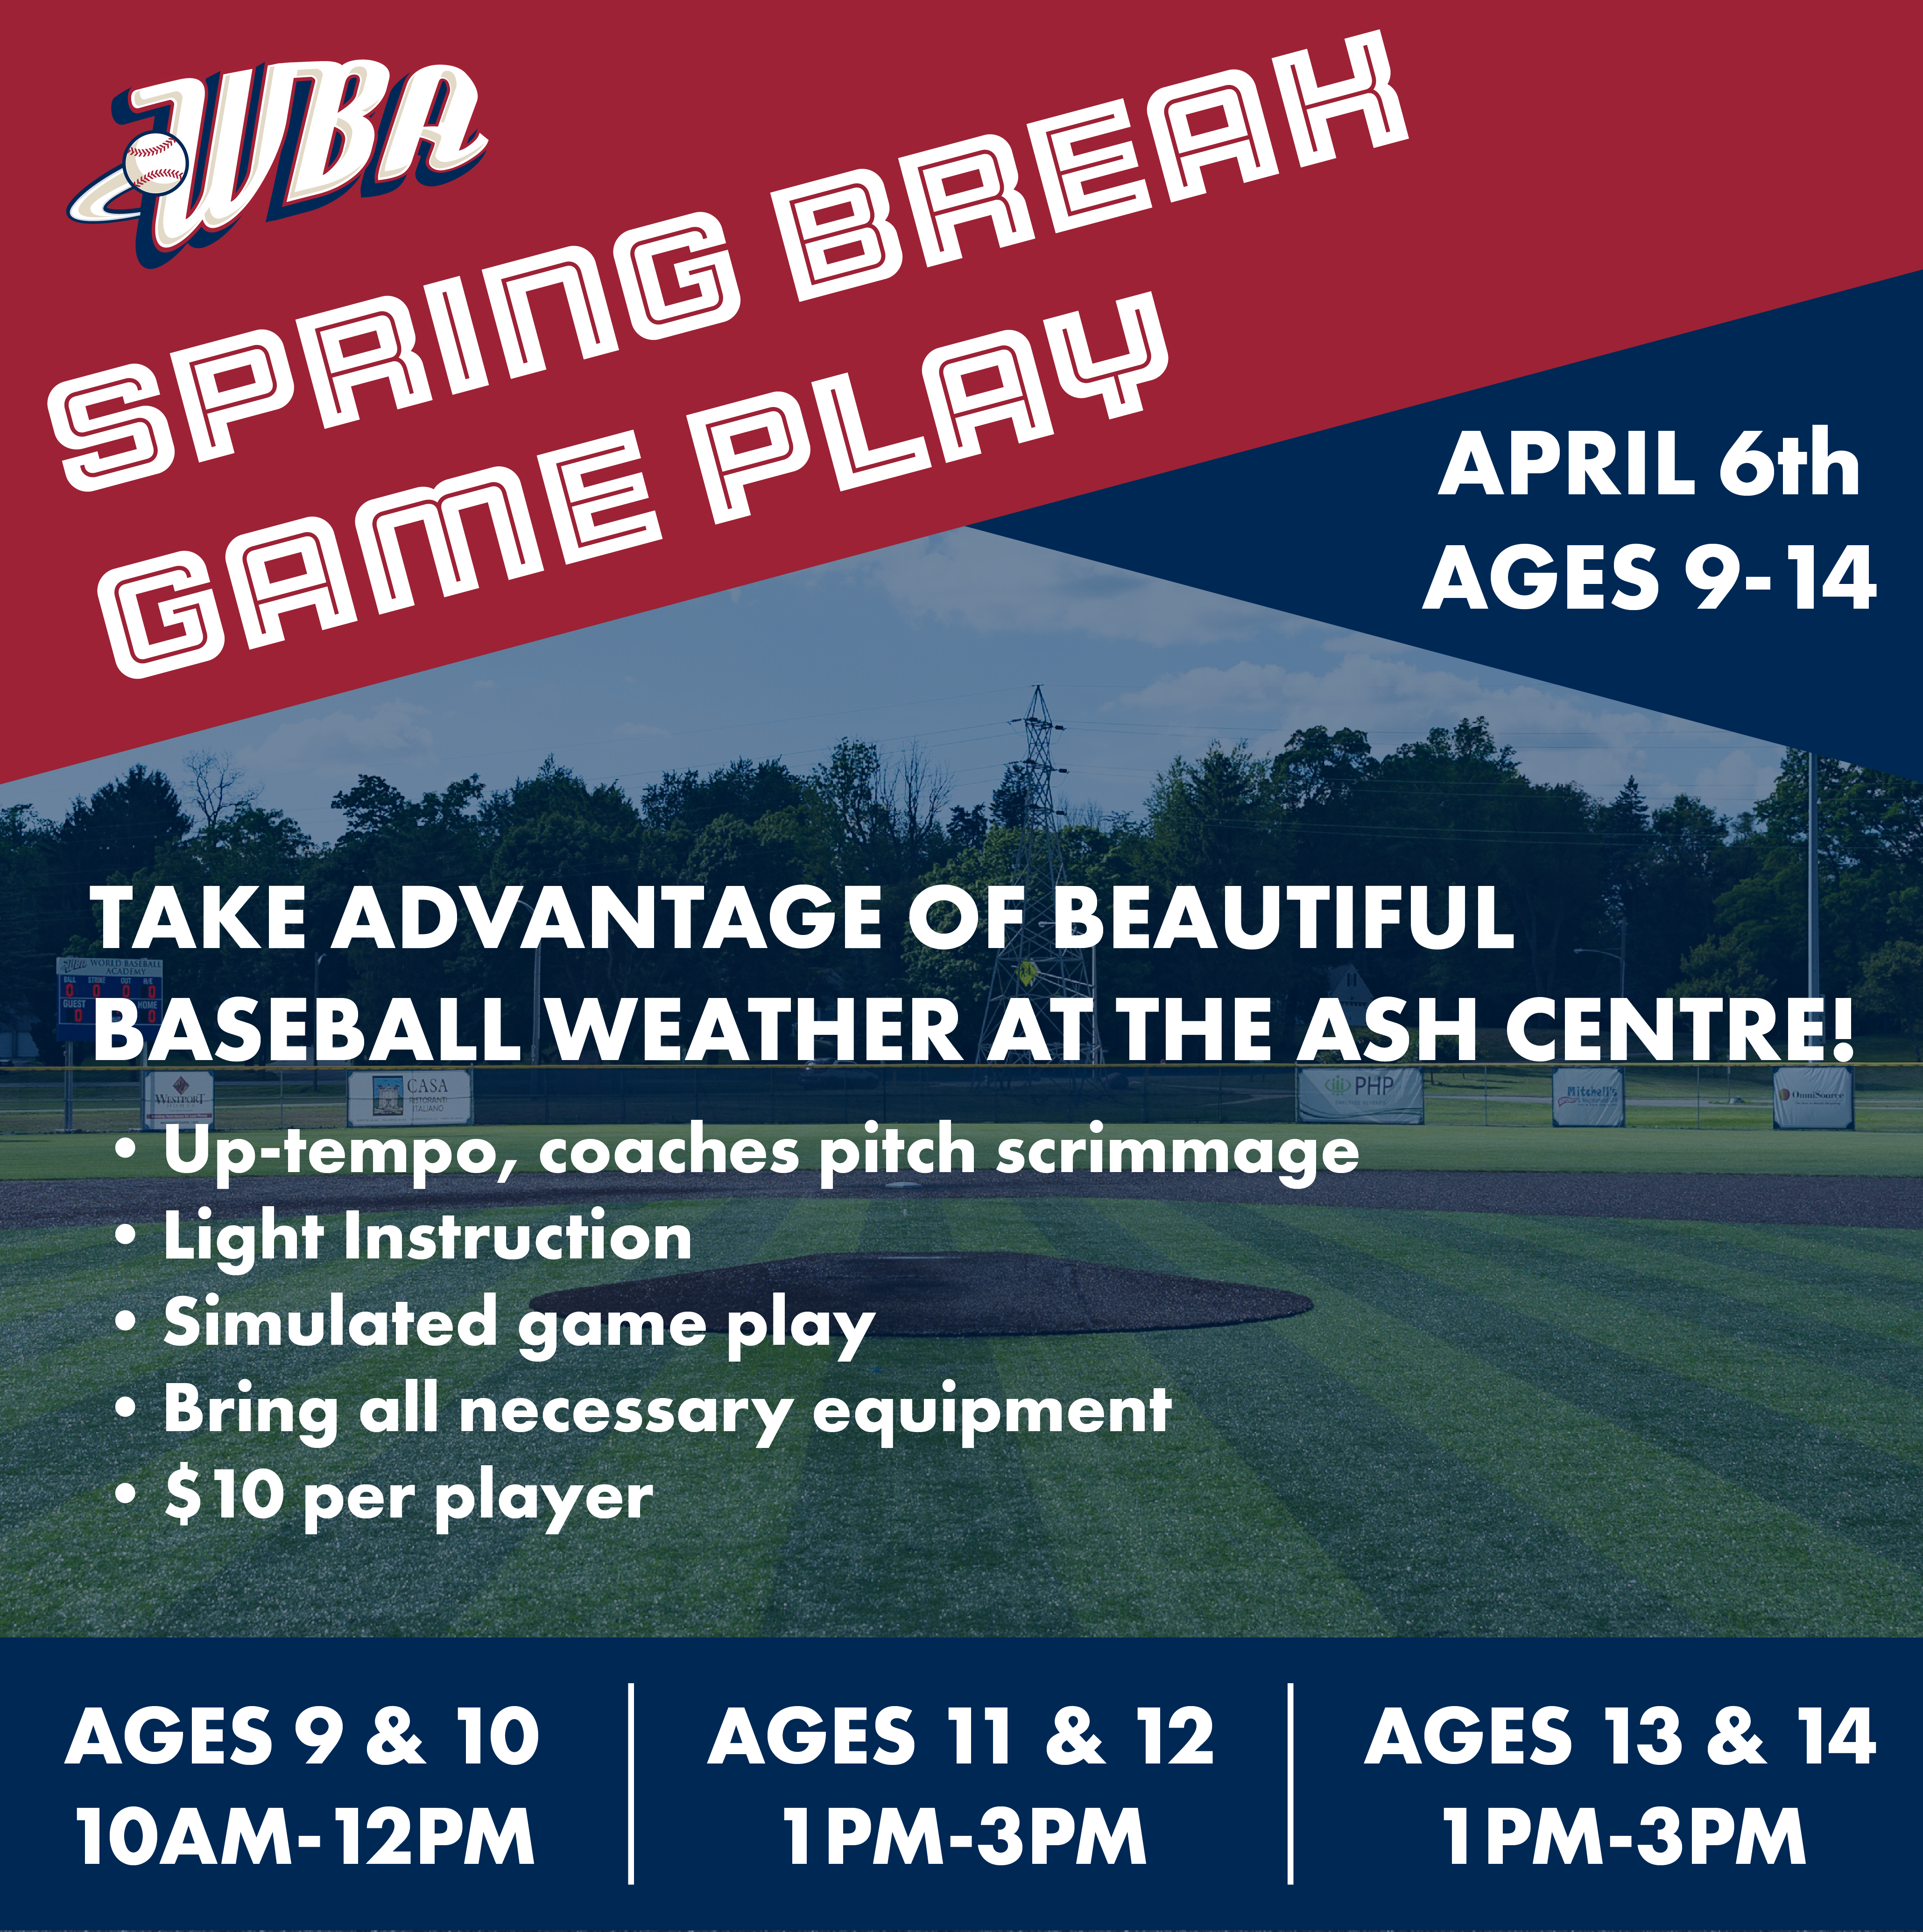 Spring Break Game Play Graphic with Schedule